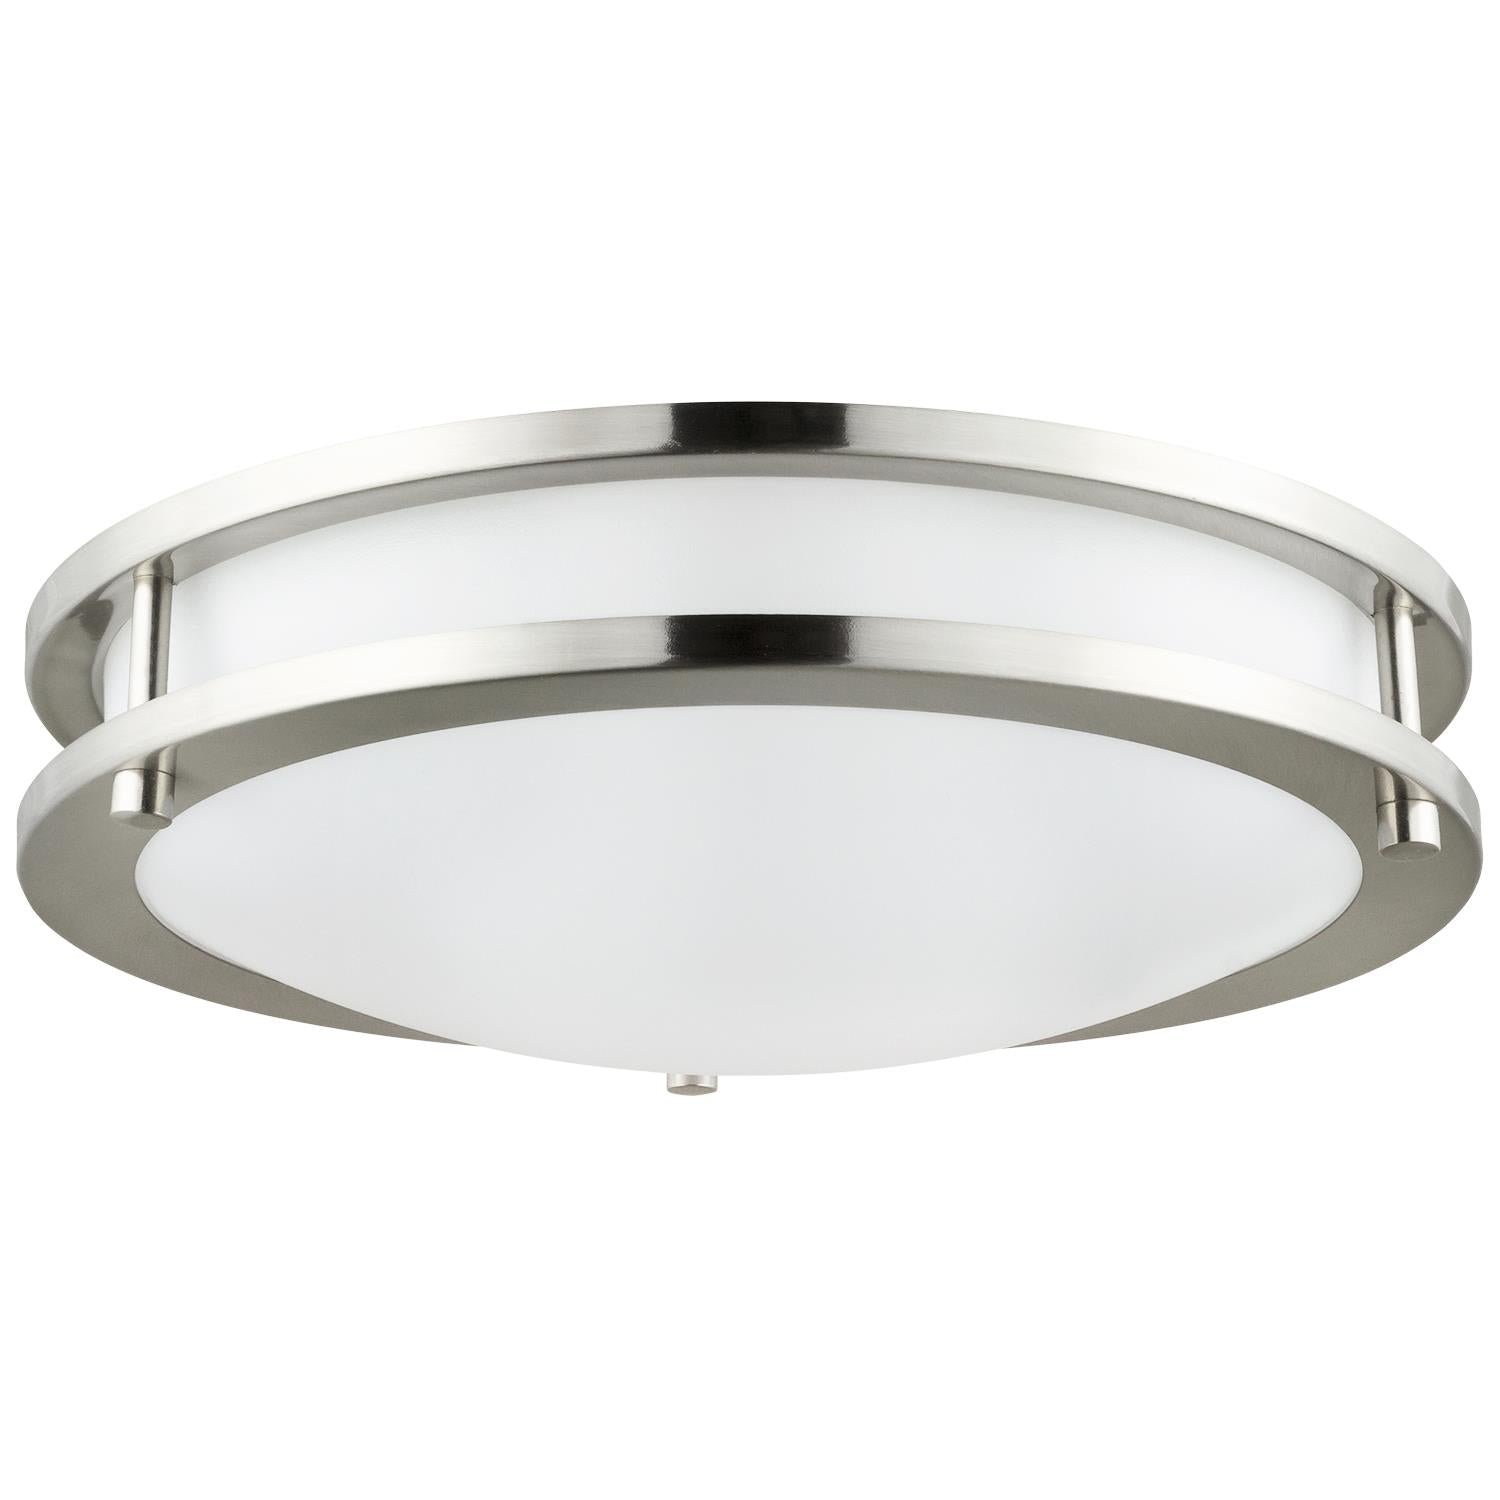 SUNLITE LED Brushed Nickel Ceiling Light Fixture 12in 15w Warm White 3000K